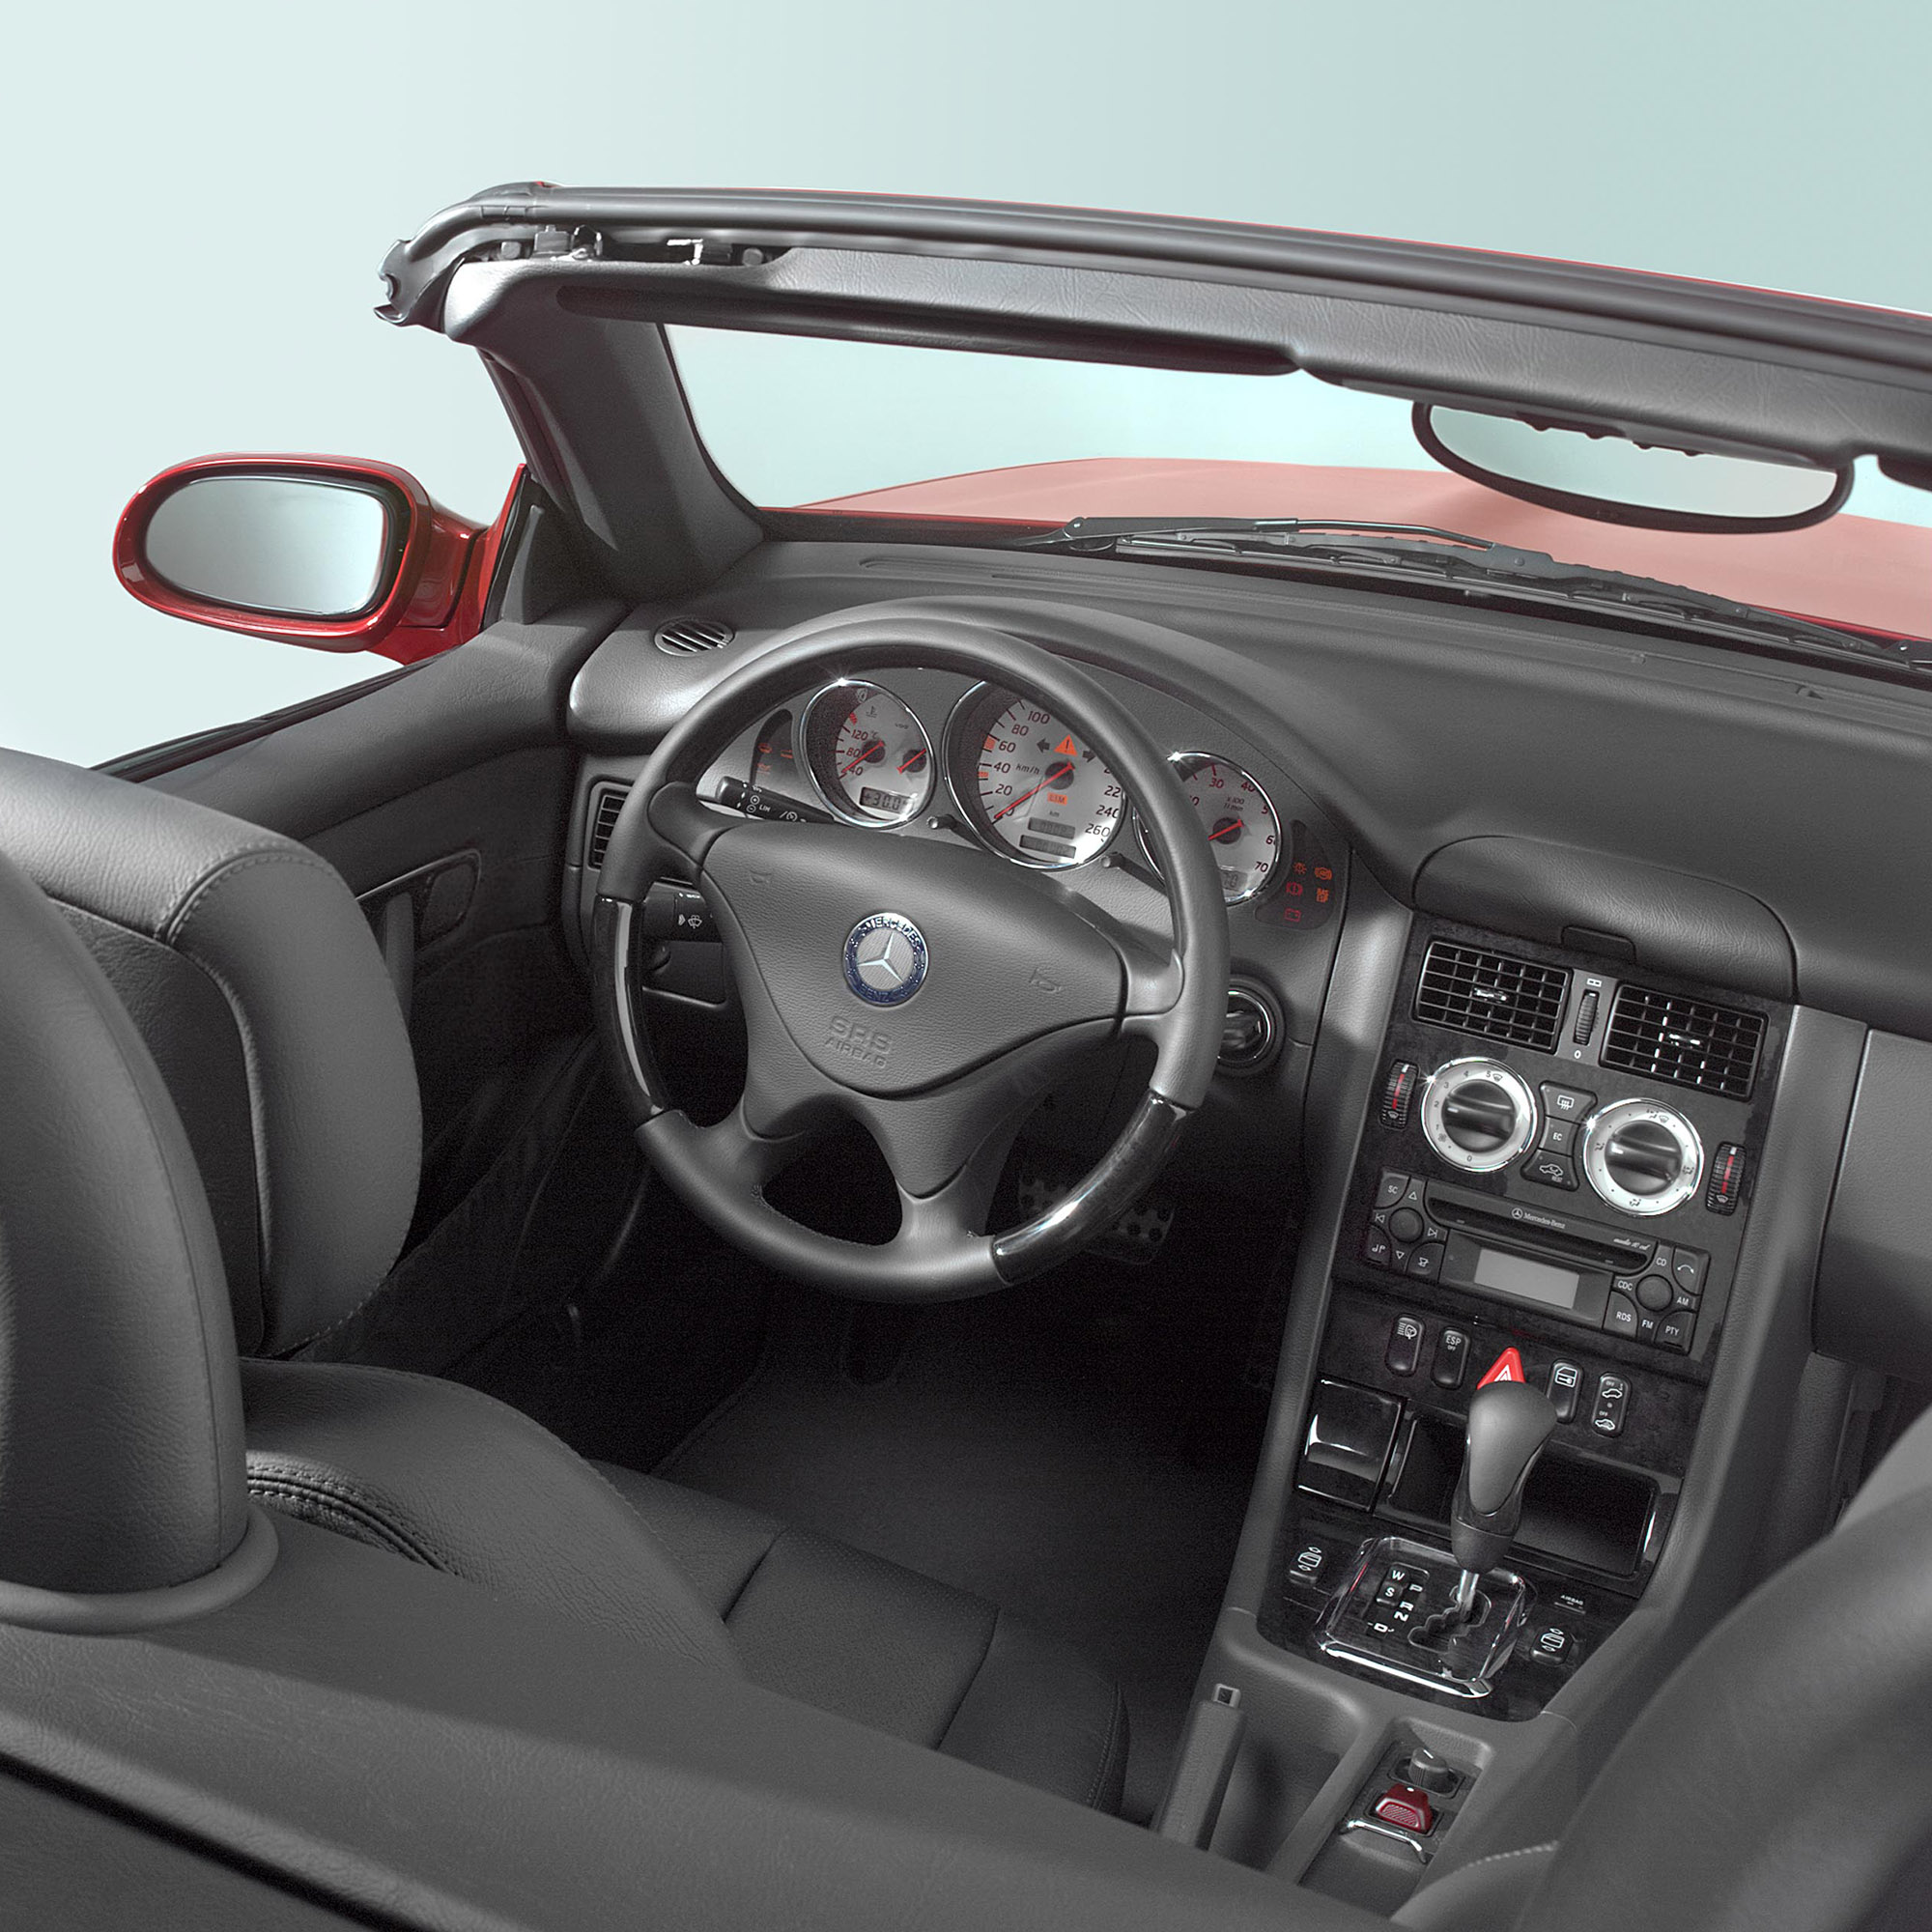 Foto interieur in cabrio